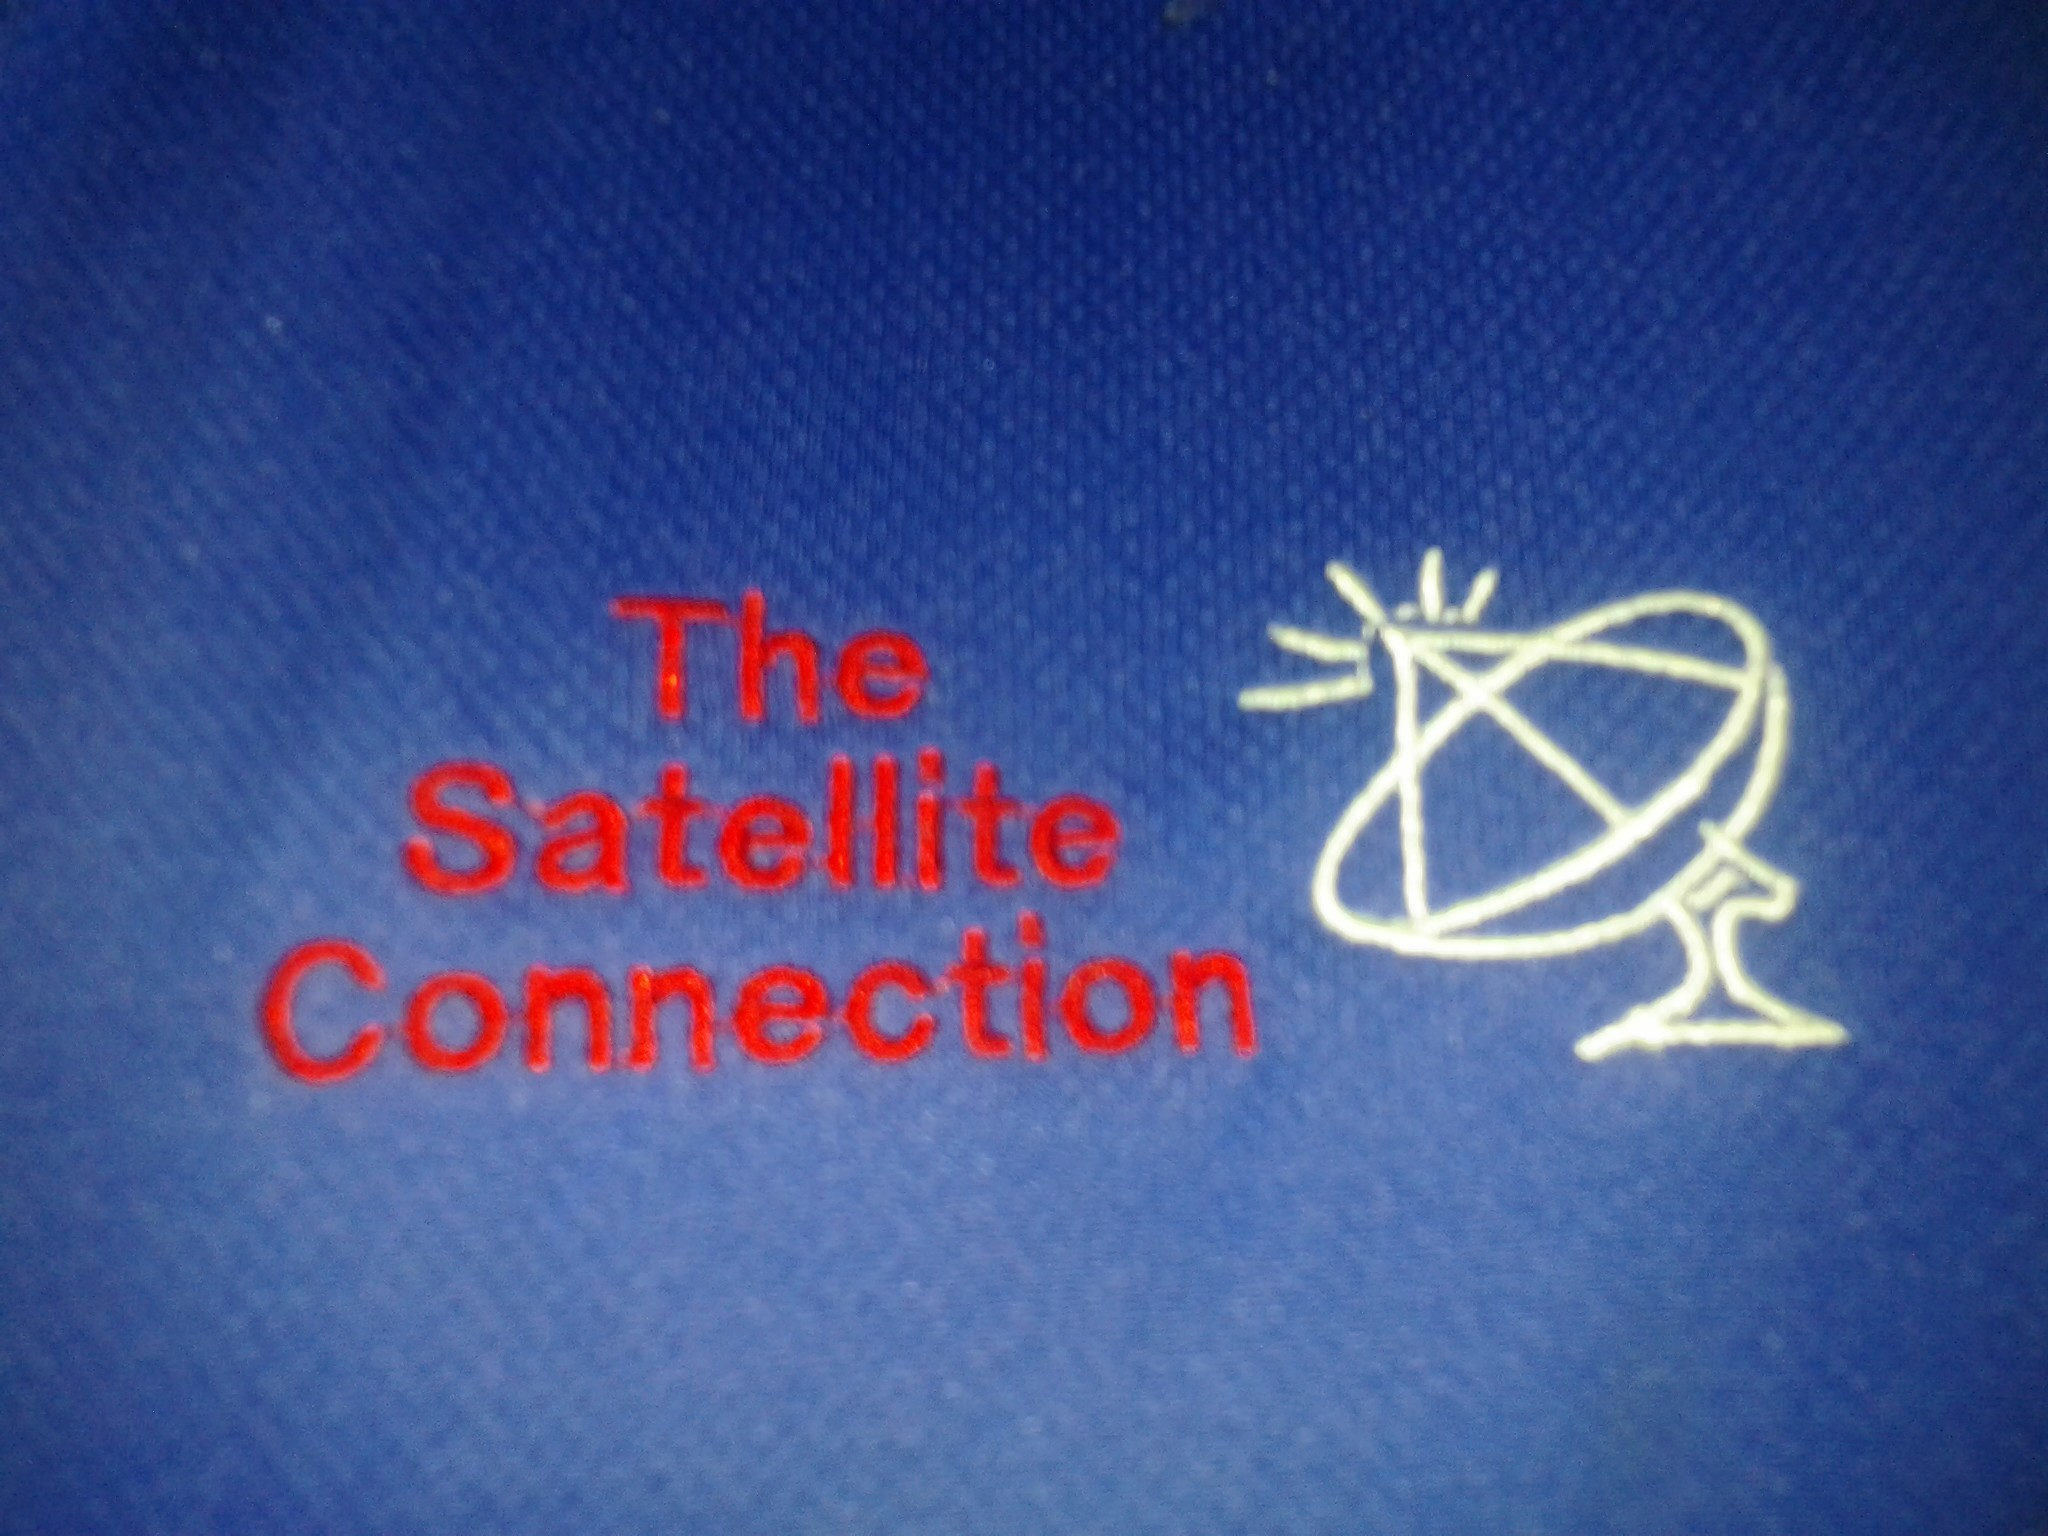 The Satellite Connection